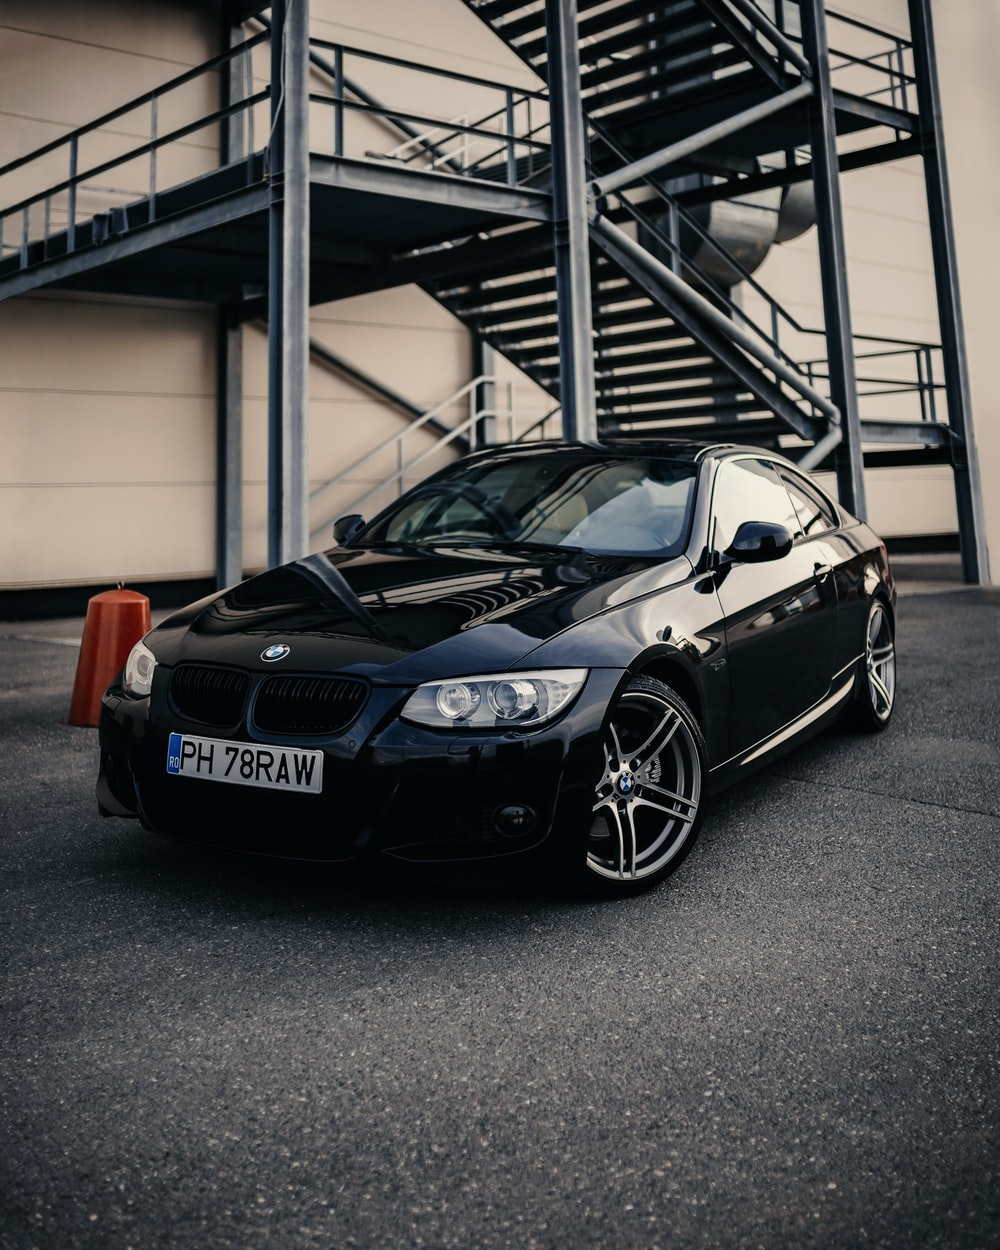 black bmw m 3 coupe parked in garage